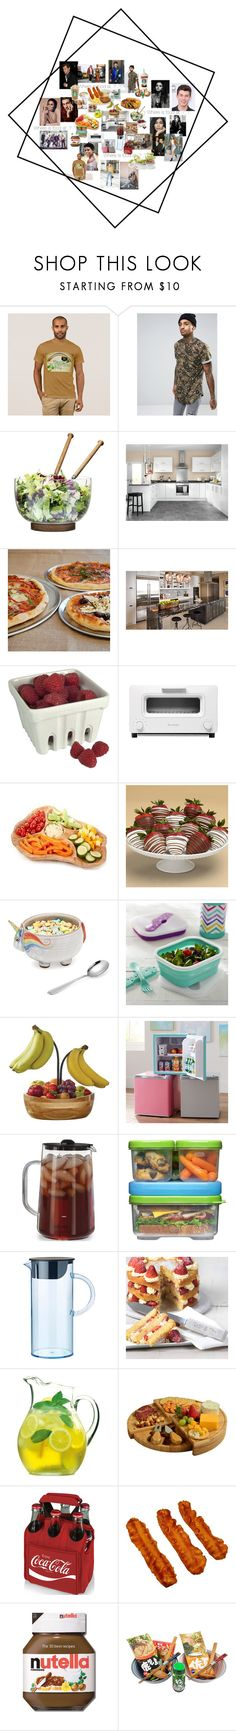 """""""Untitled #505"""" by mommacarter ❤ liked on Polyvore featuring interior, interiors, interior design, home, home decor, interior decorating, Sixth June, Sagaform, Sur La Table and Artland"""